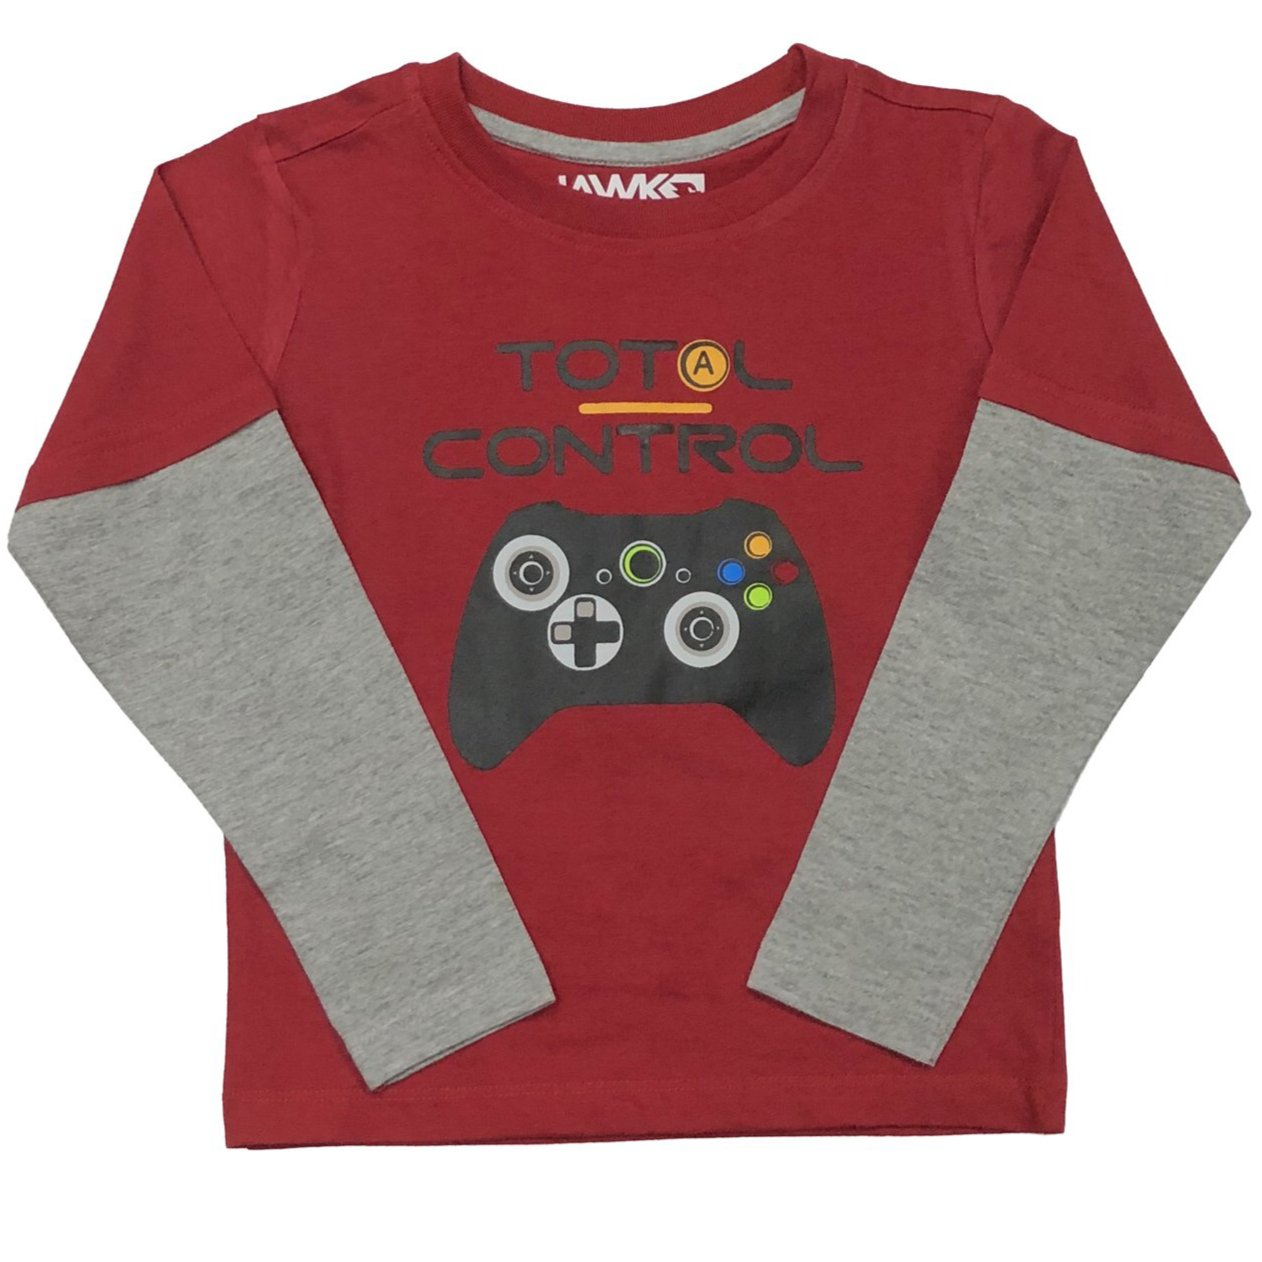 Boys Tony Hawk Hang Down L/S Graphic Top